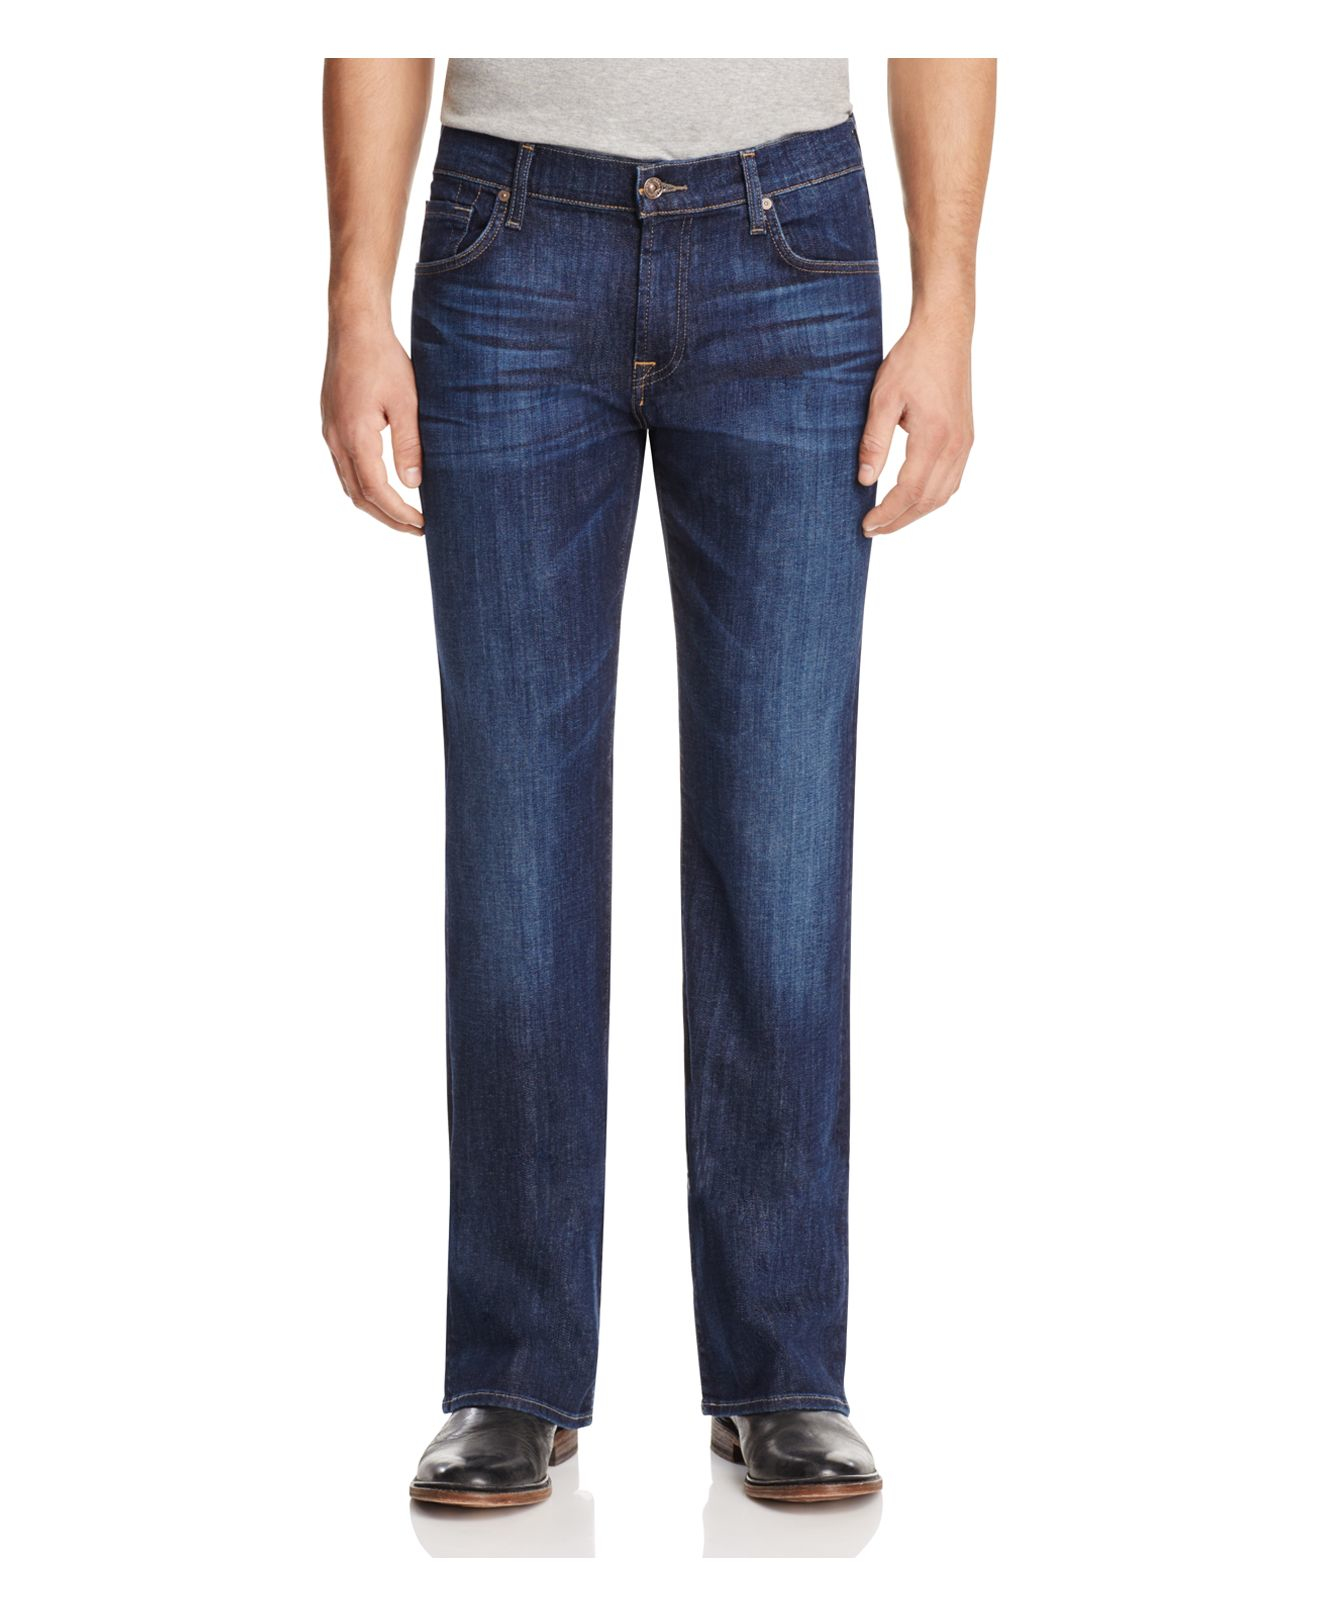 American Eagle Outfitters has been producing the finest quality jeans for over 40 years. We have an endless variety of washed and worn denim, but most jeans start out dark.